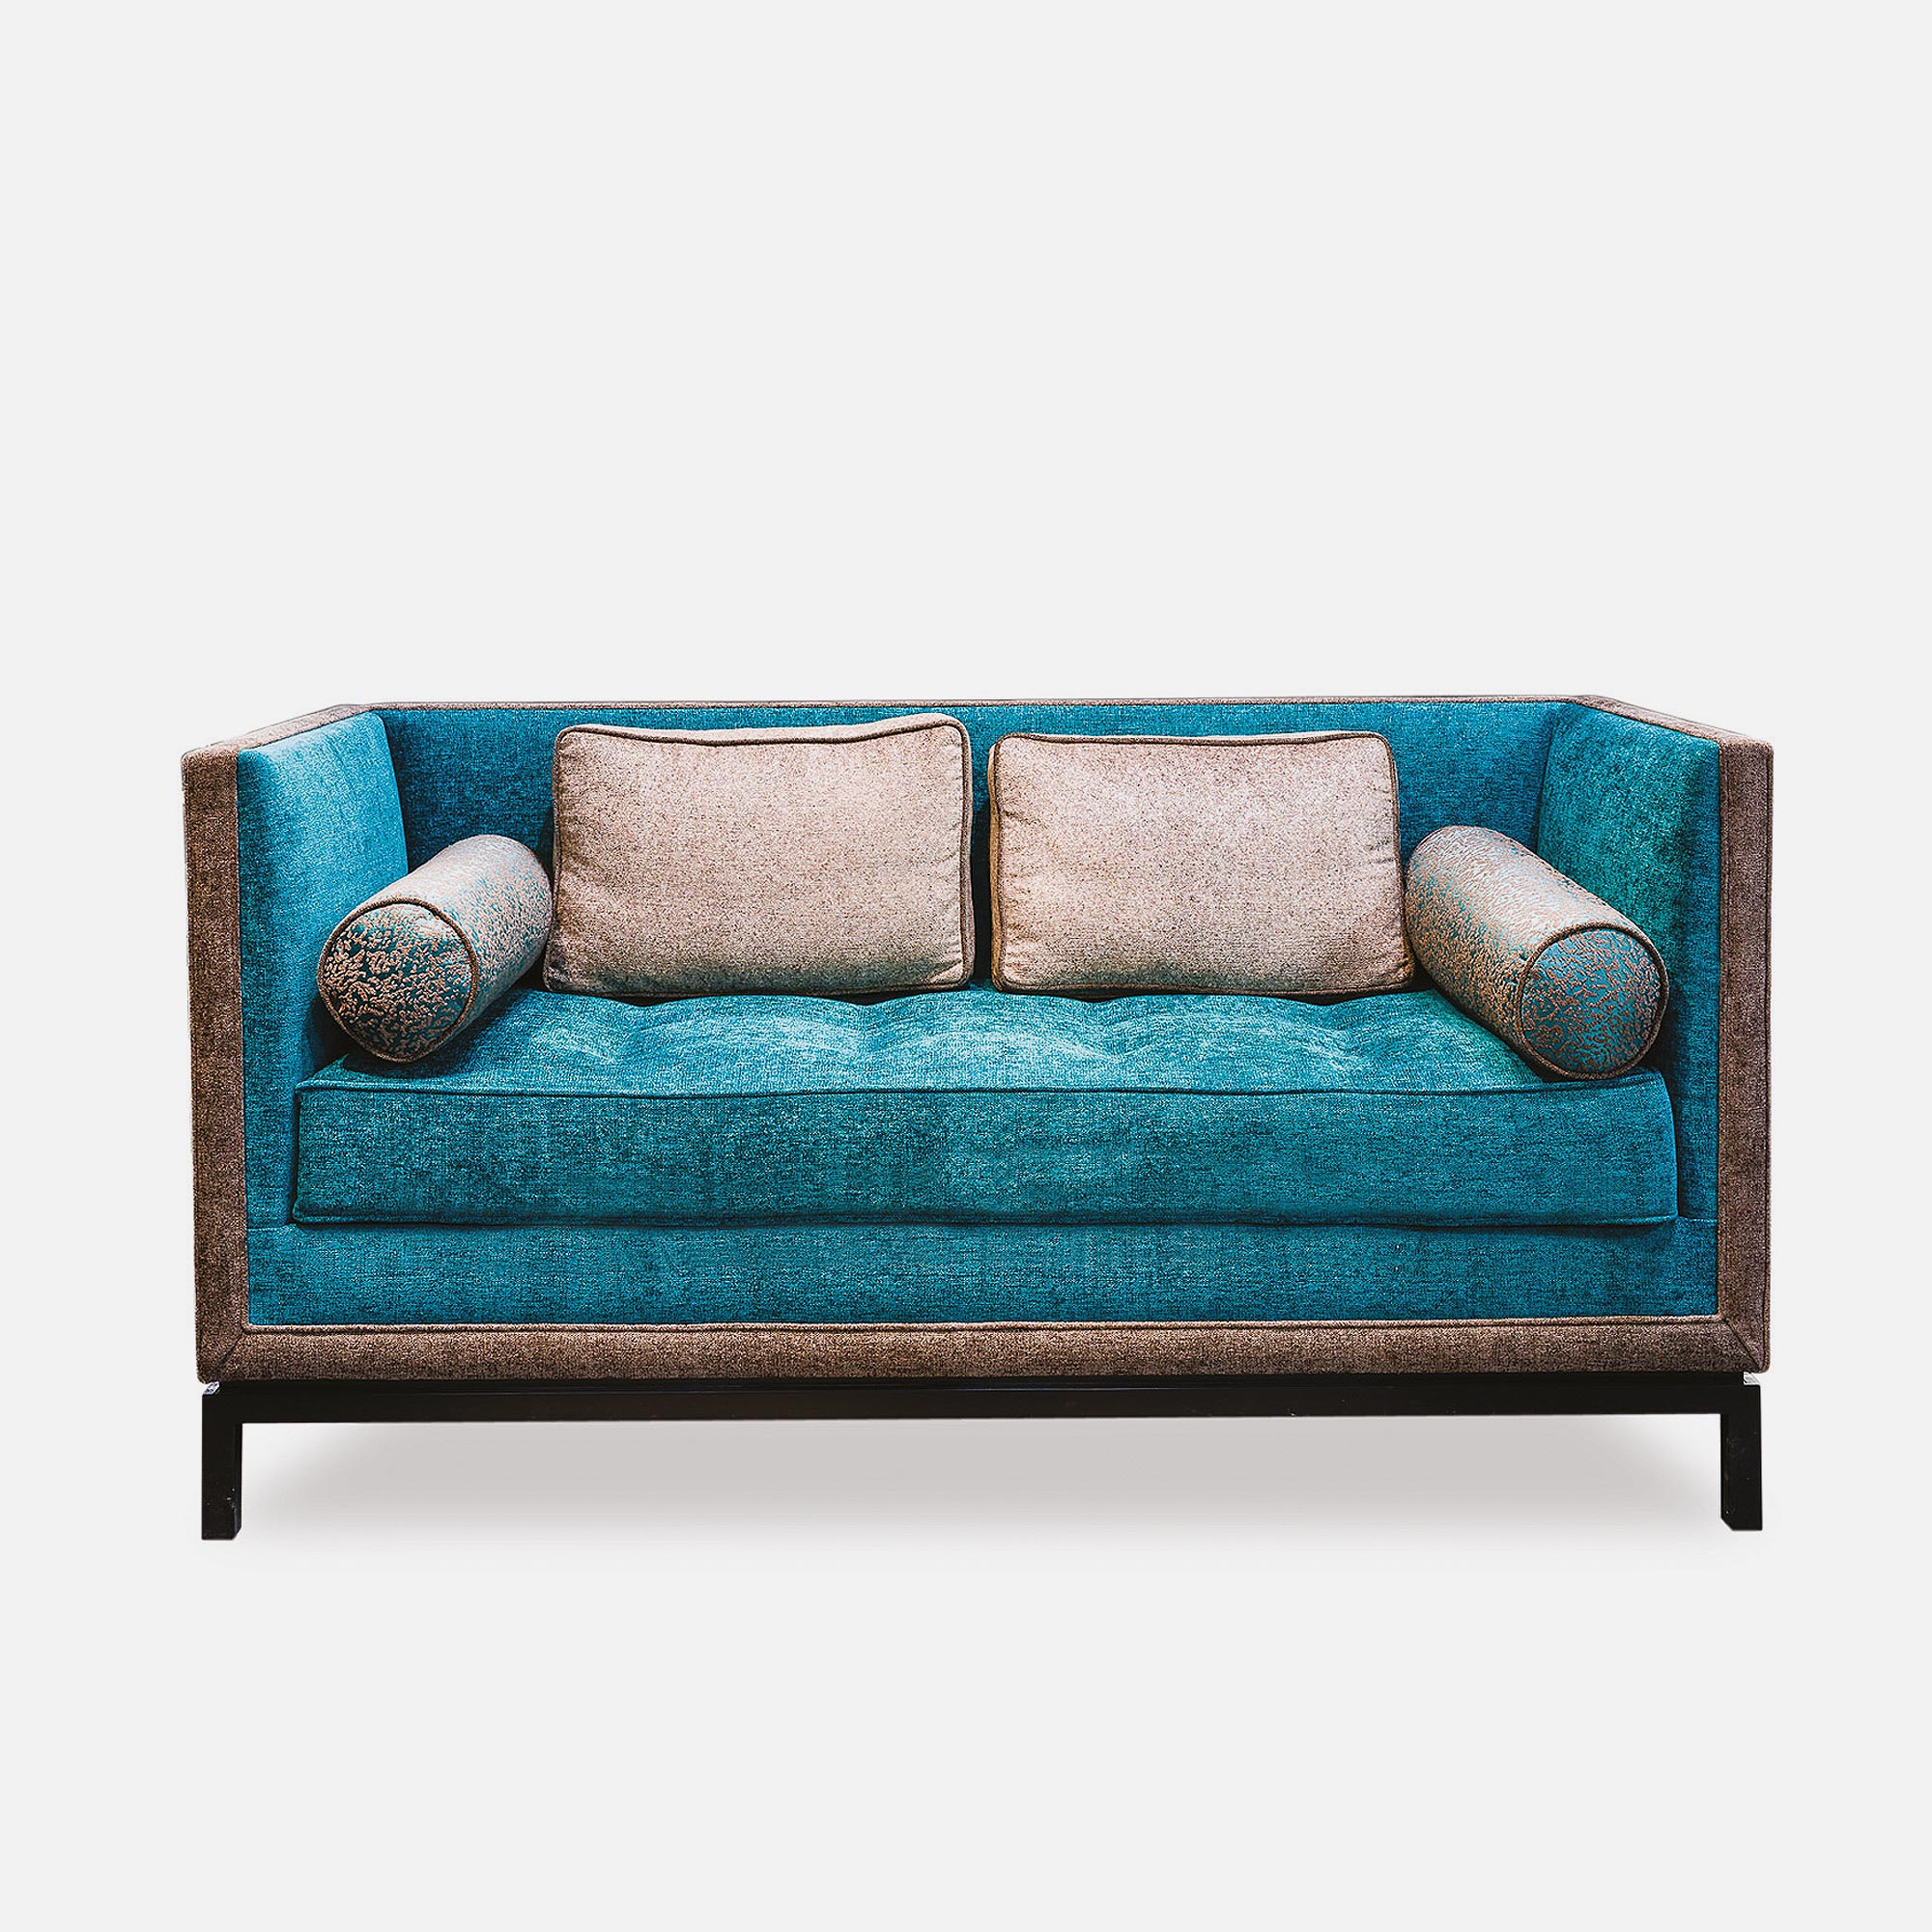 1er Sofa Albert 1er Sofa For Hotel Restaurant Bar Collinet